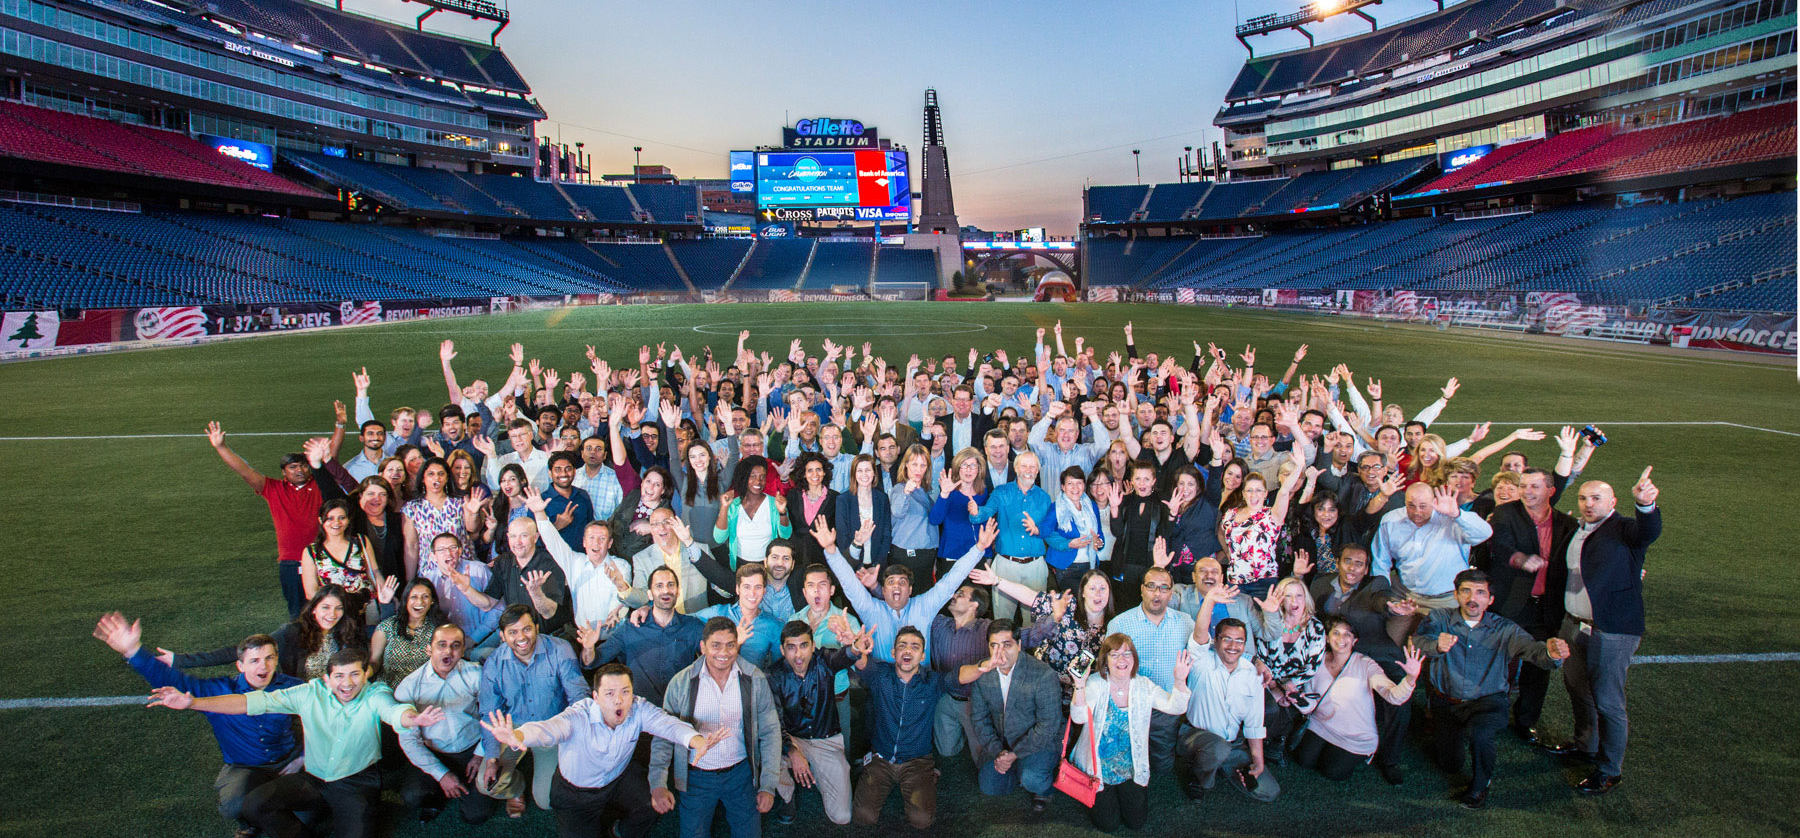 EMC group portrait on field-Gillette Stadium Field